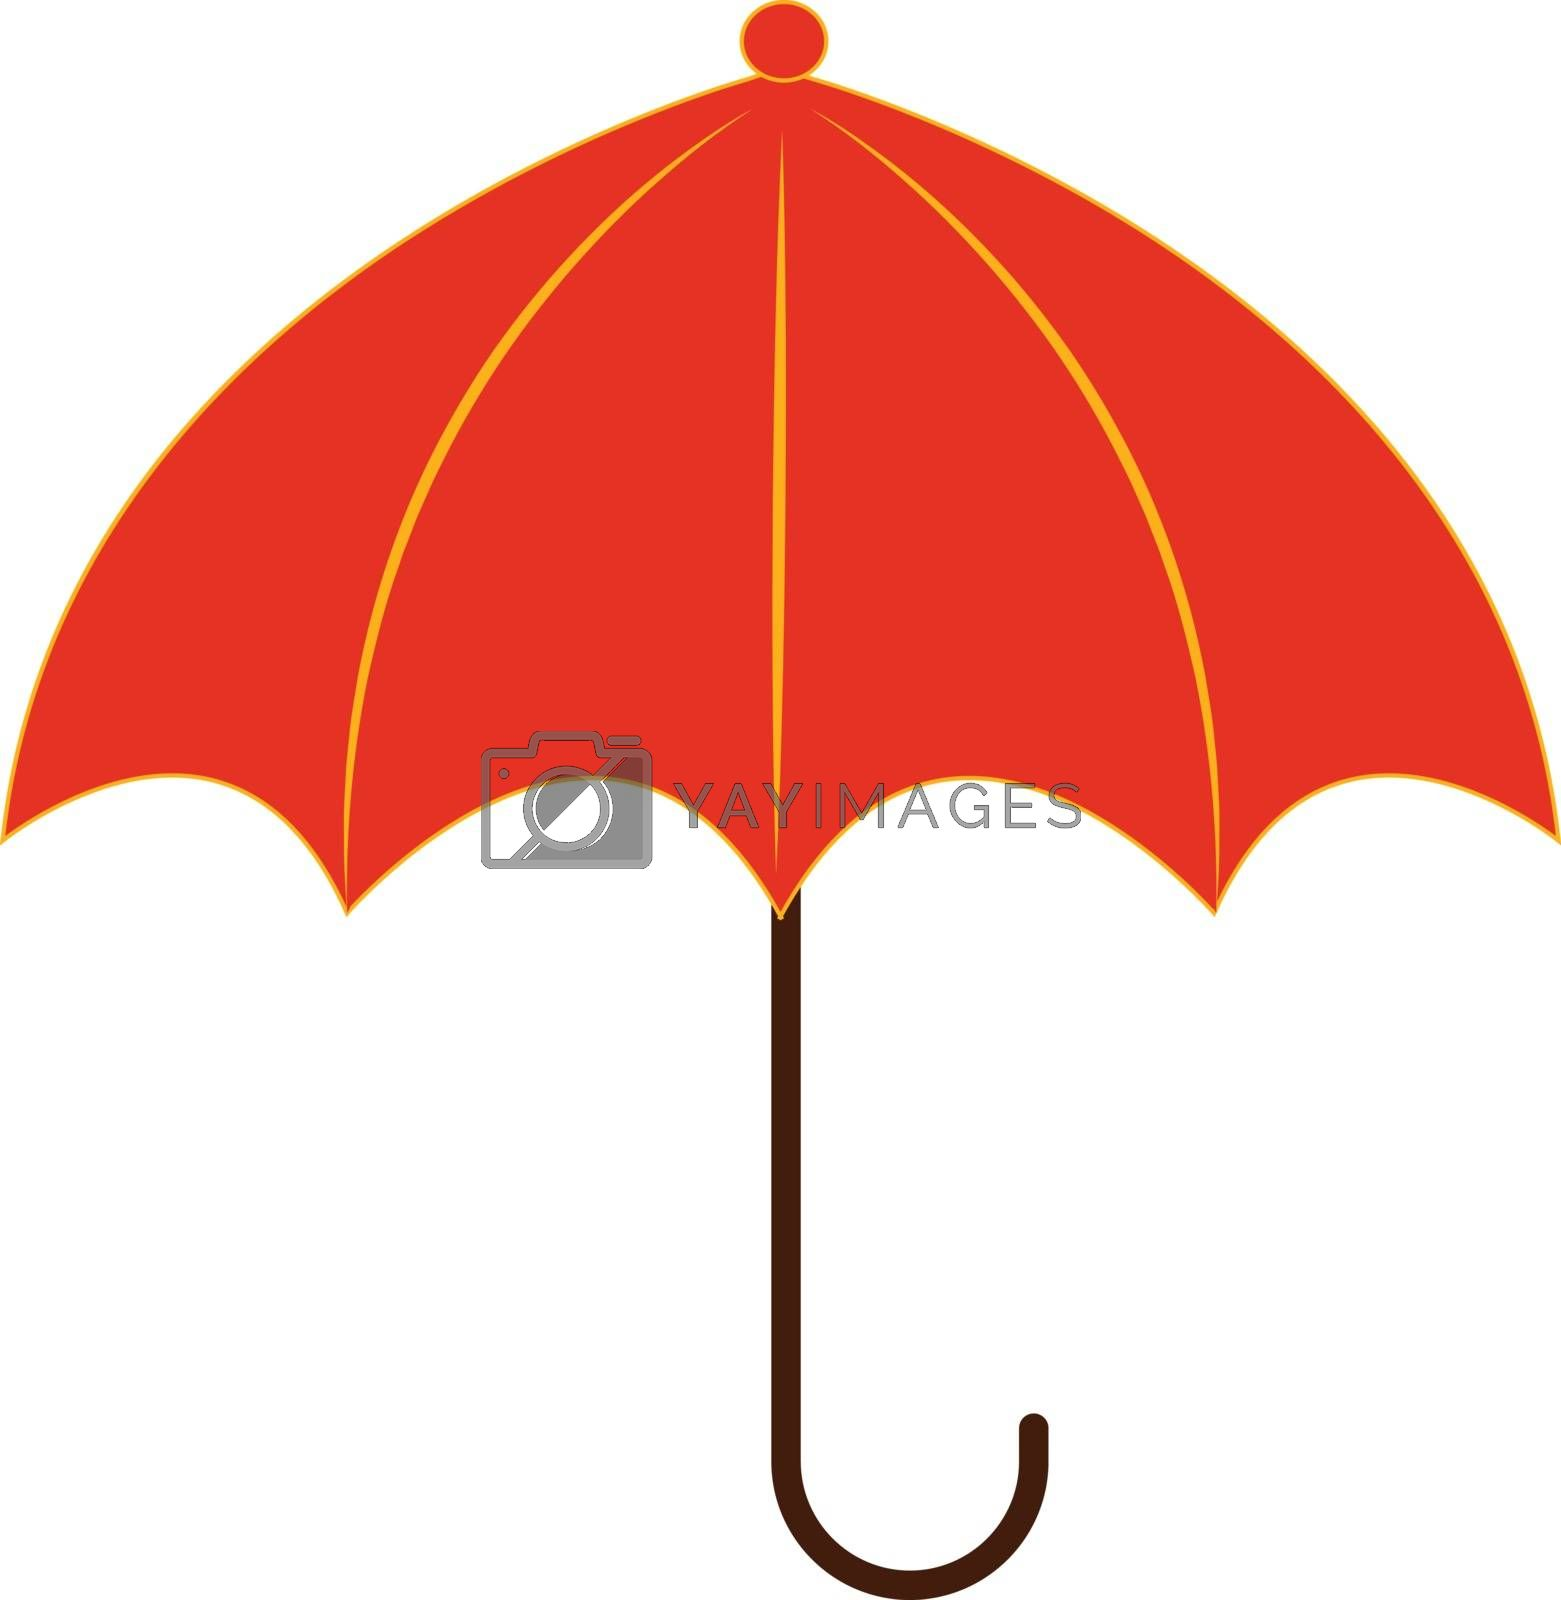 Royalty free image of Clipart of a red-colored compact and light umbrella/Red umbrella by Morphart